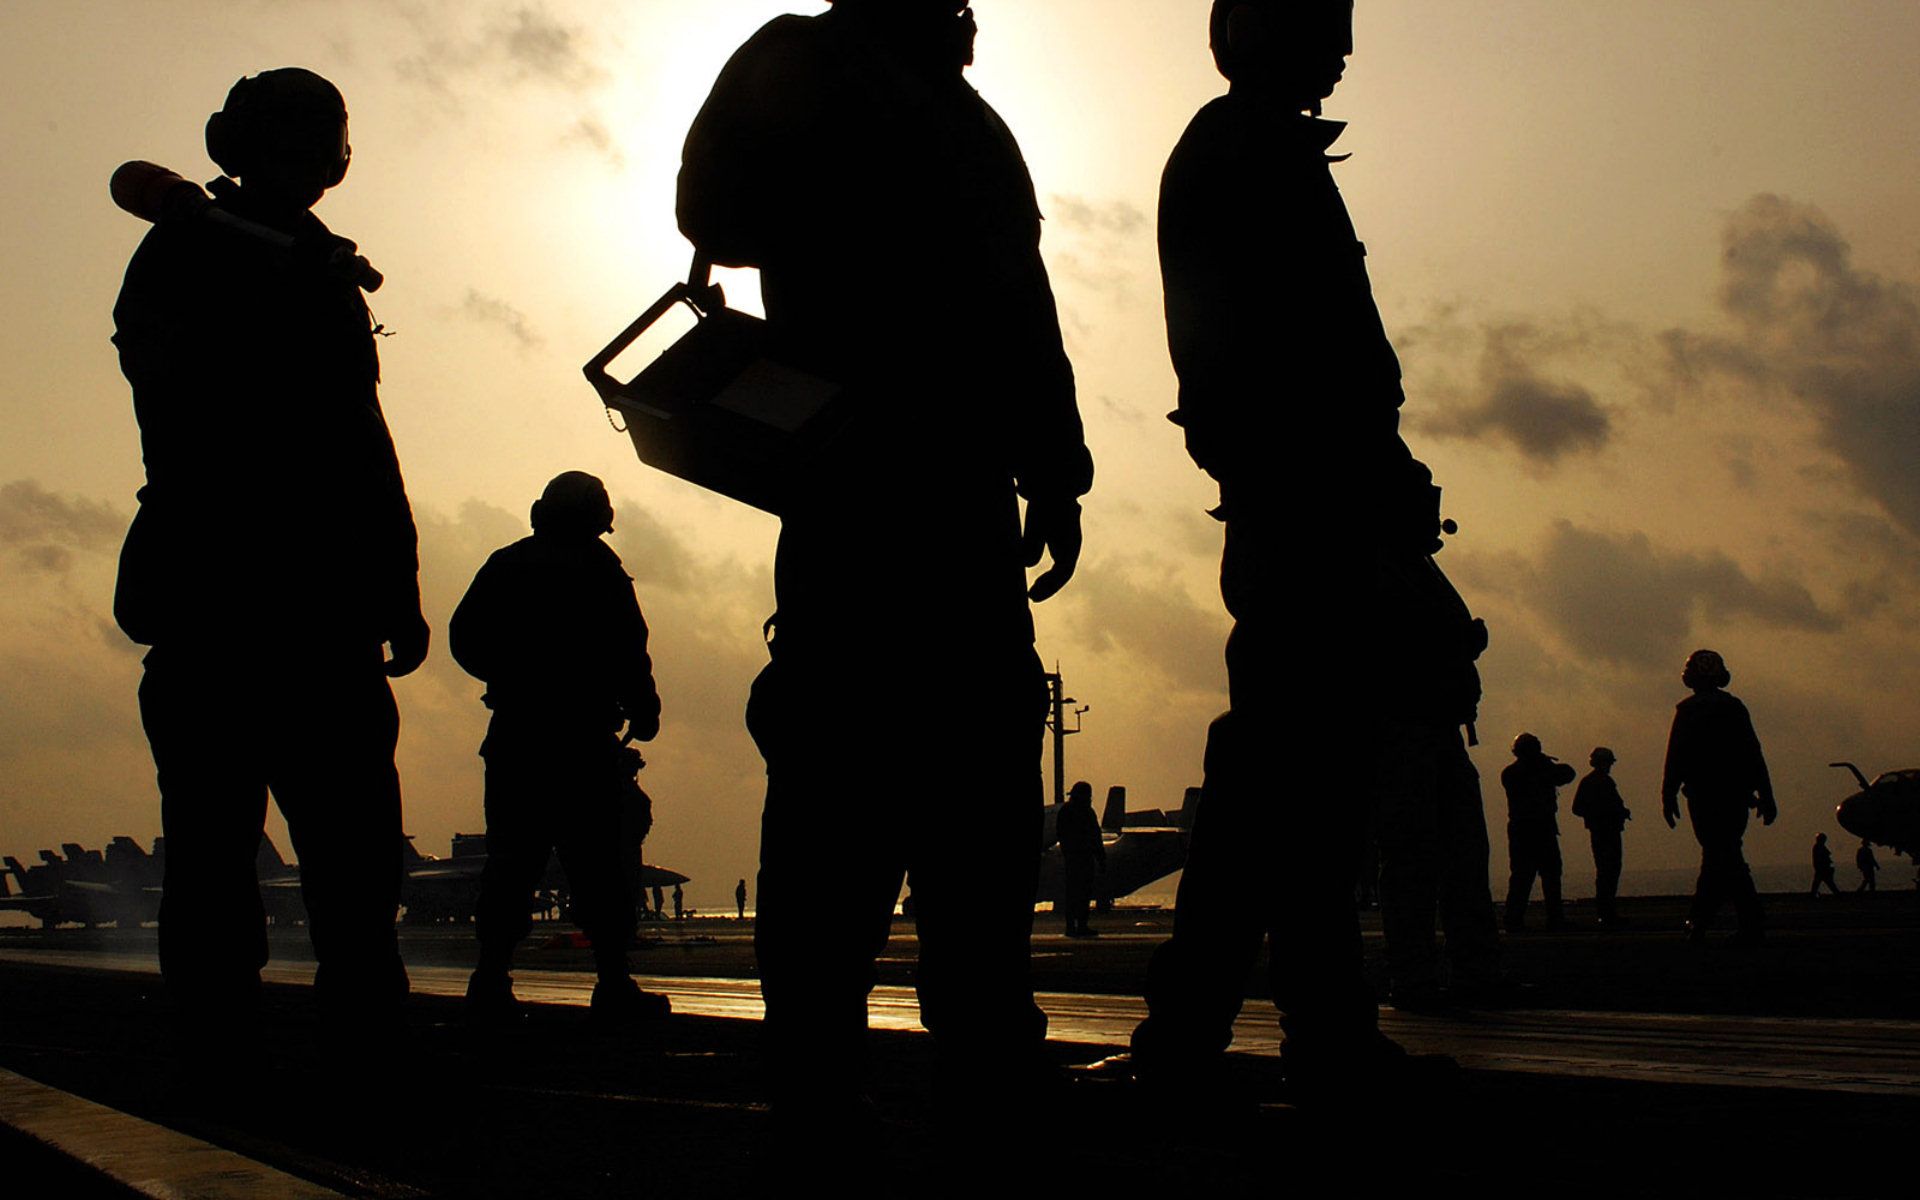 Warzone Soldiers Wallpaper Background 31677 1920x1200